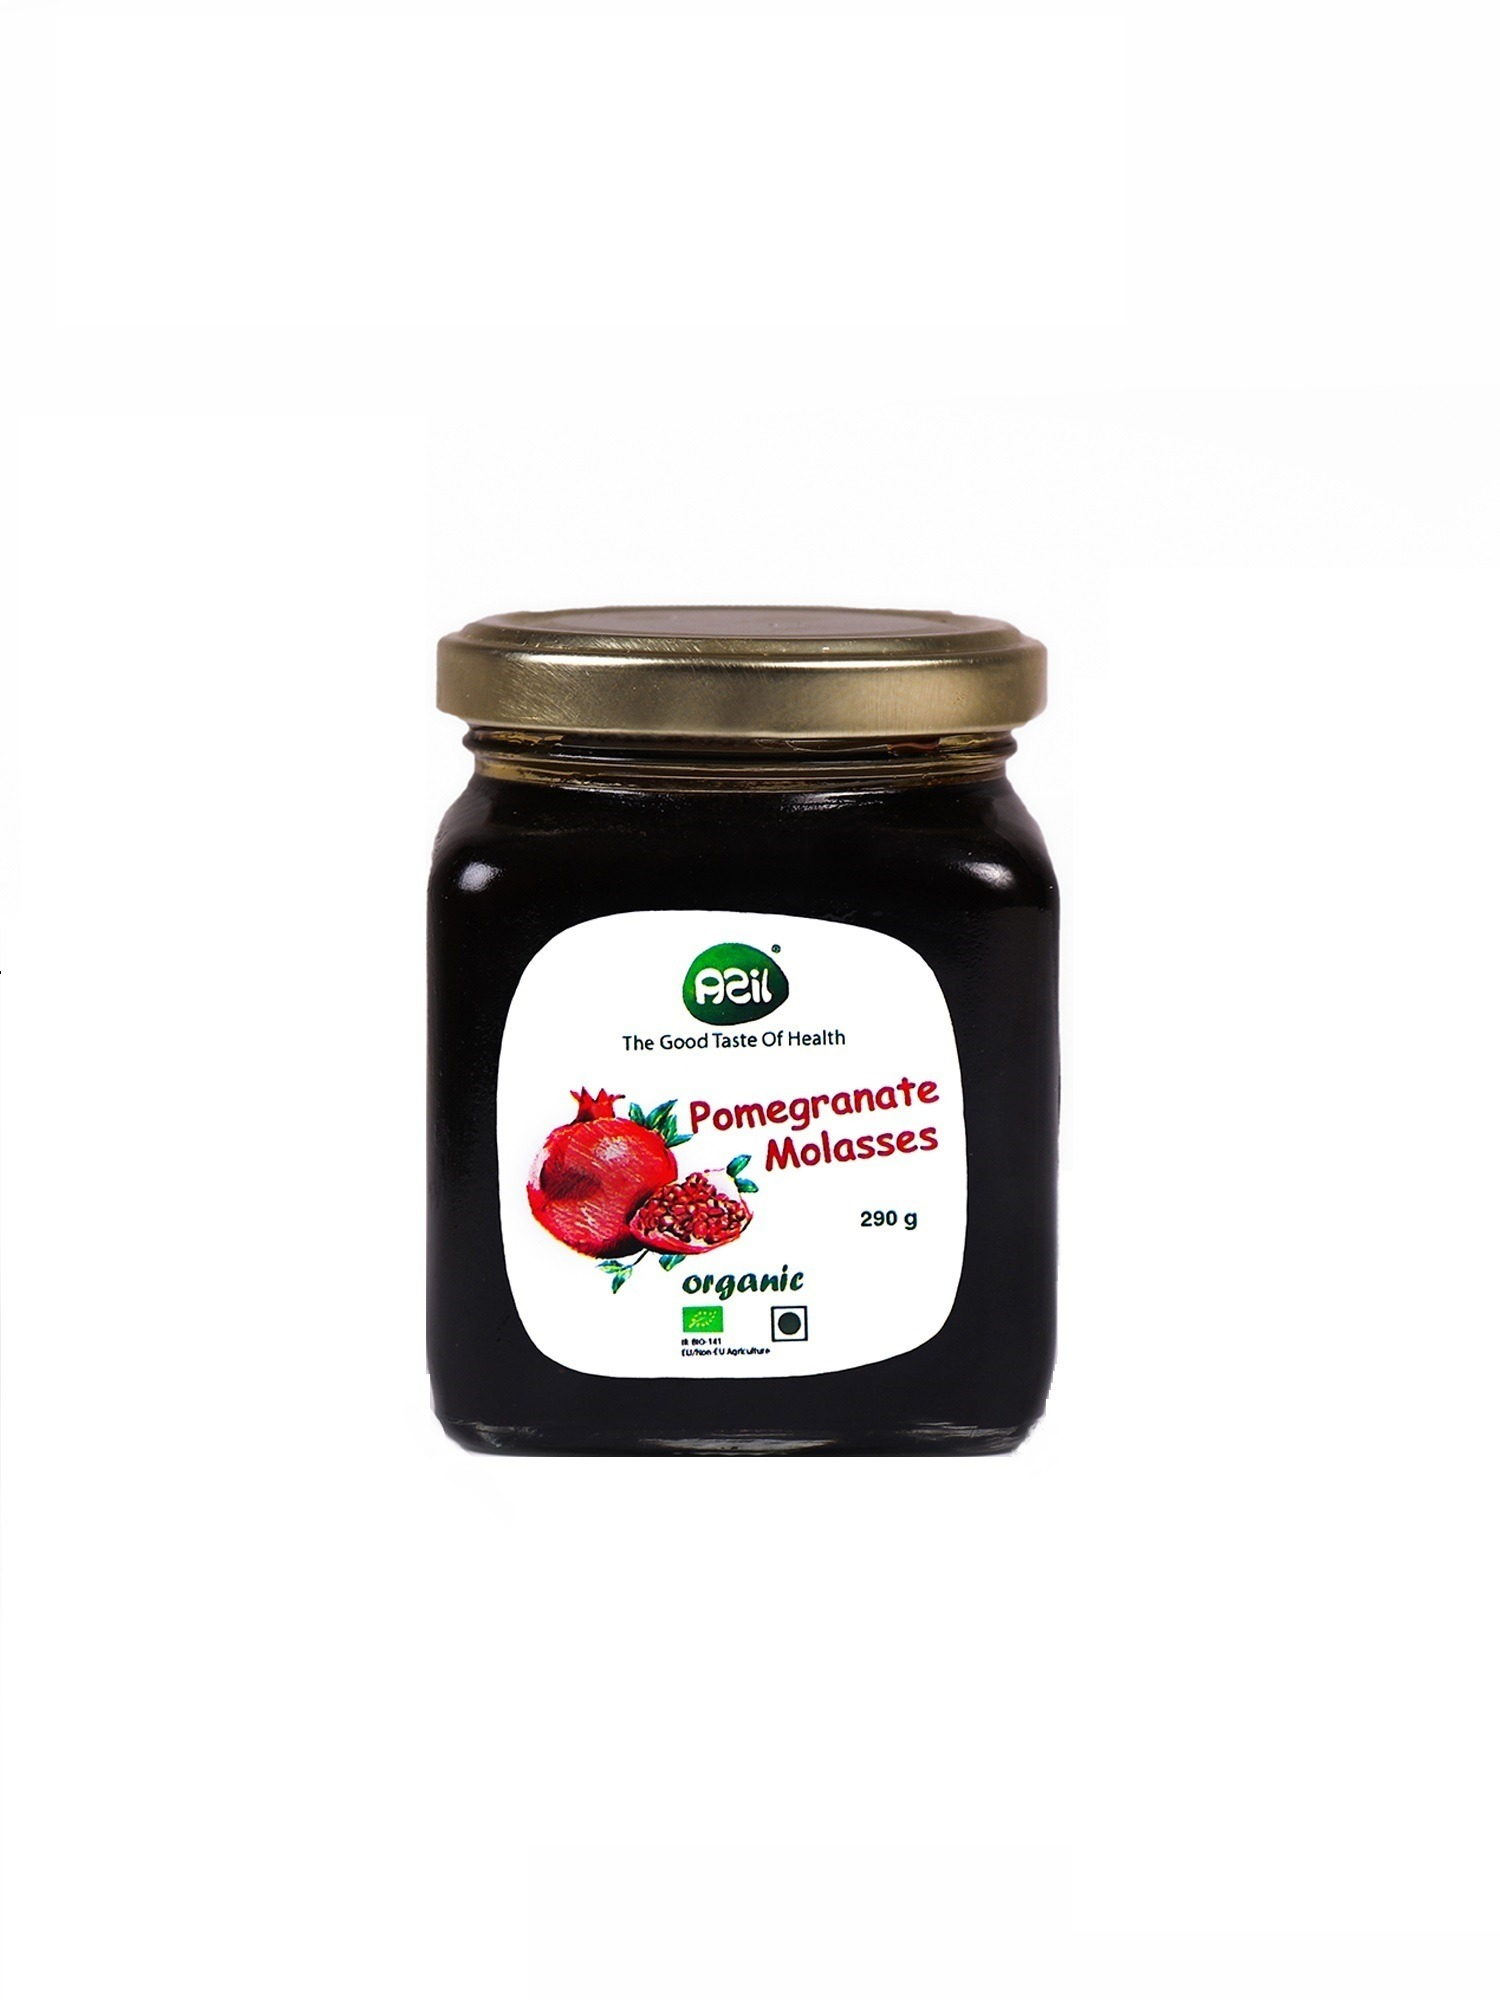 Pomegranate Molasses 1 - Azil Organic Pomegranate Molasses